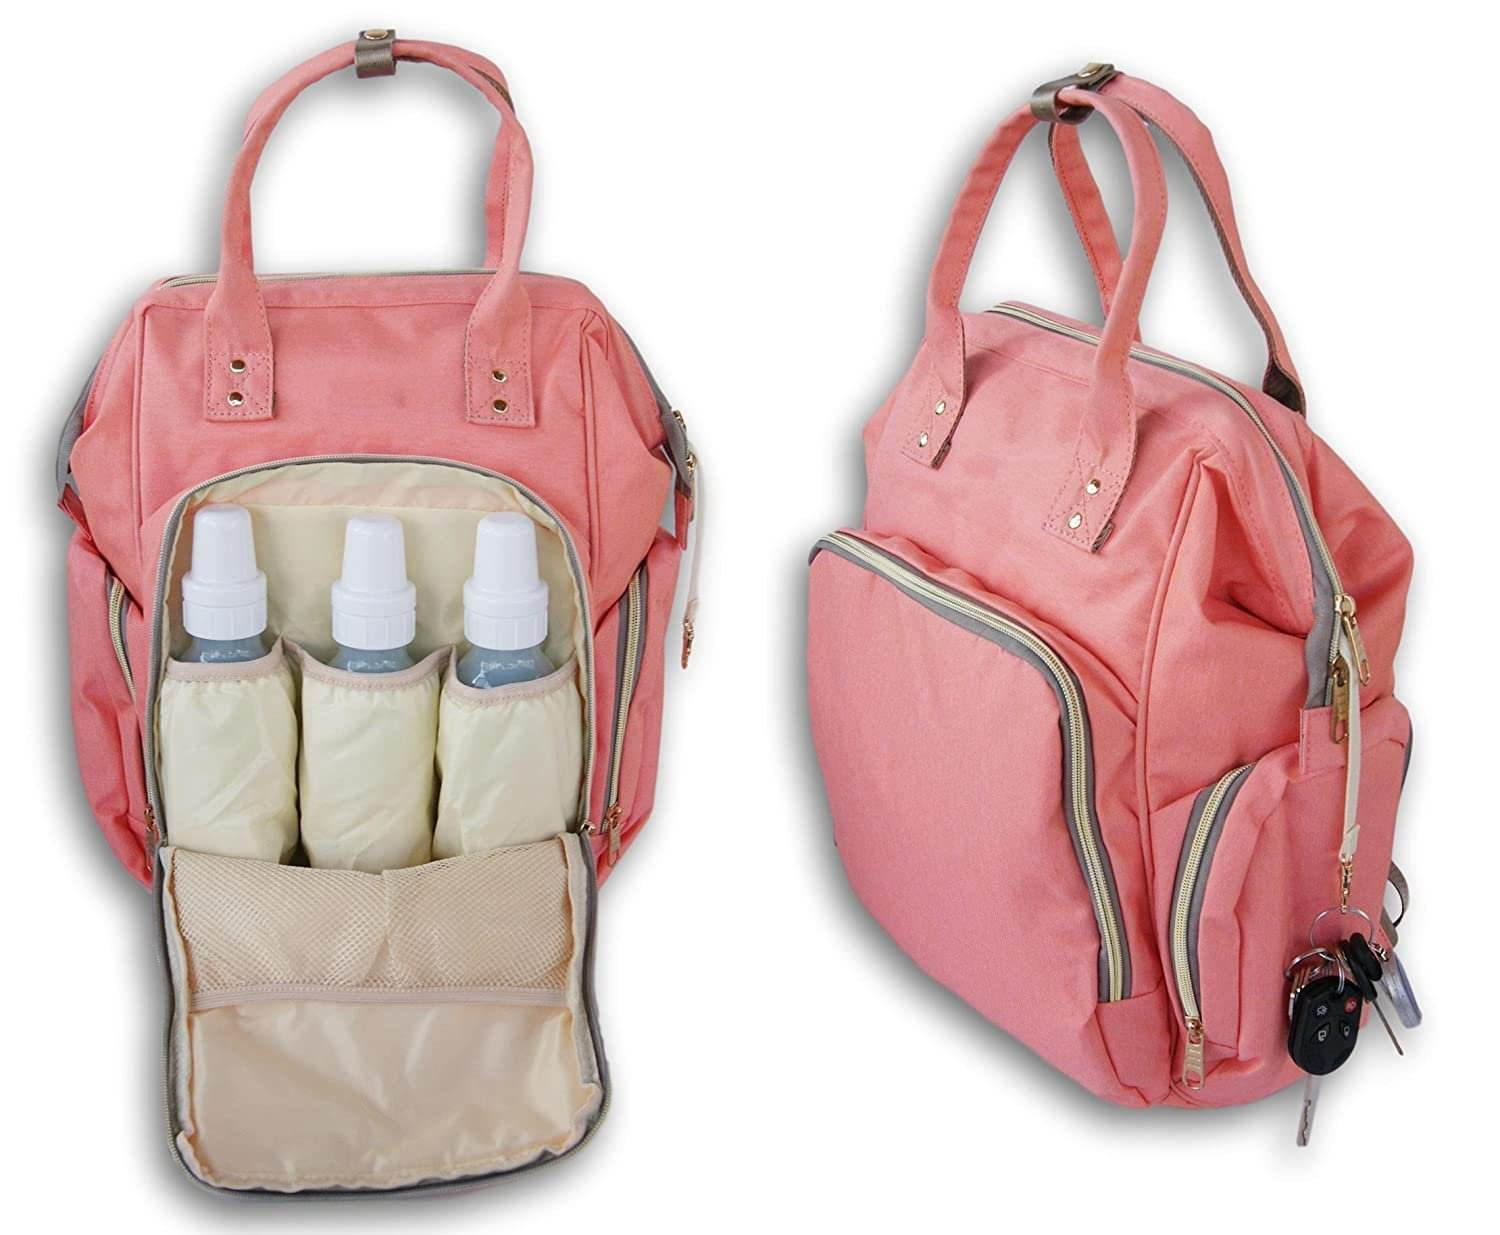 FREE SAMPLE Large Backpack Baby Changing Diaper Bag Coral Pink diaper bag